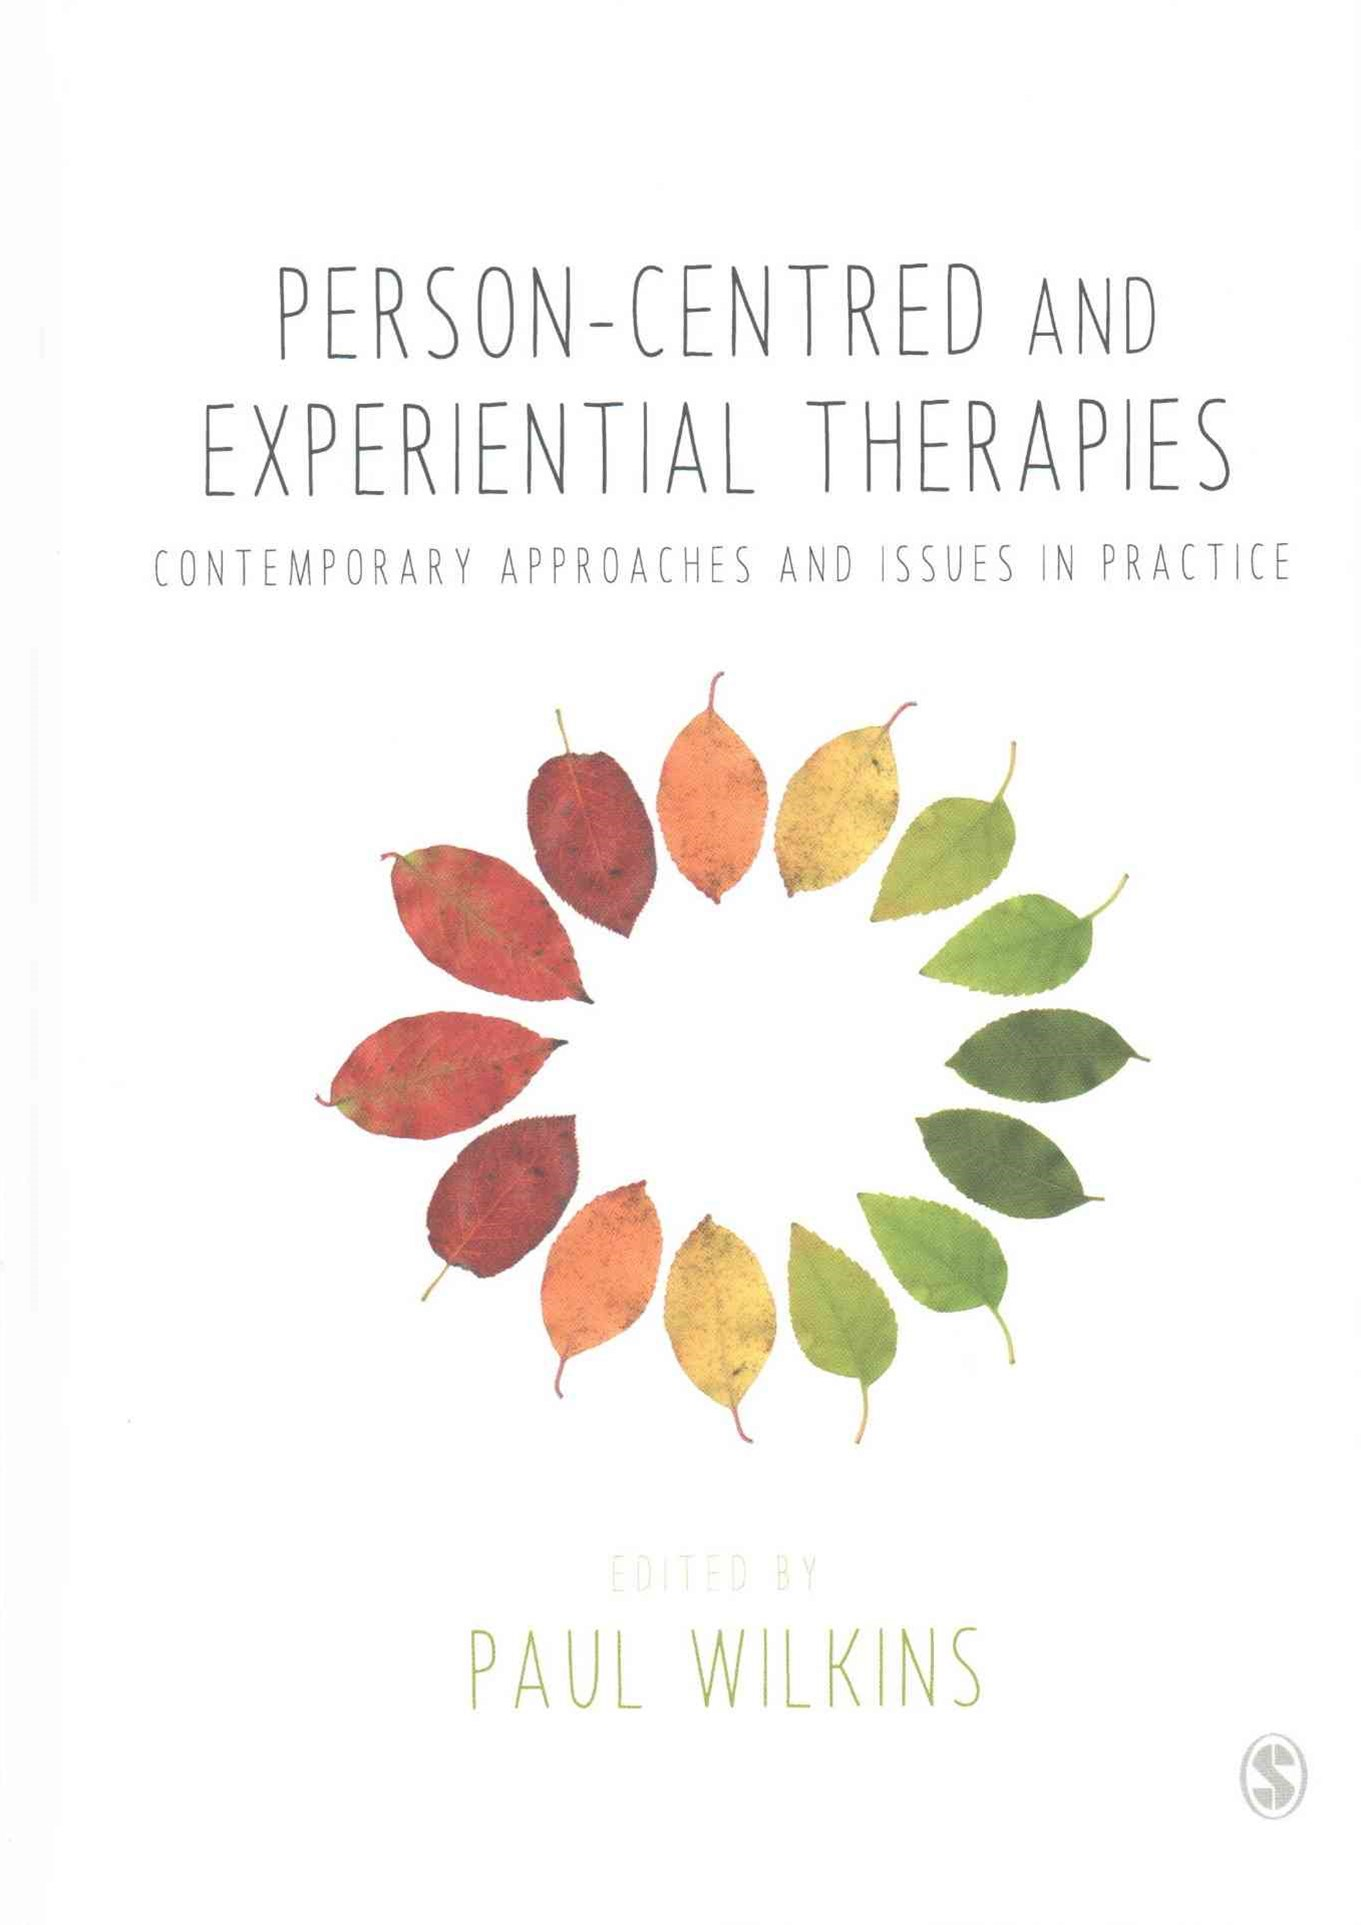 Person-Centred and Experiential Therapies